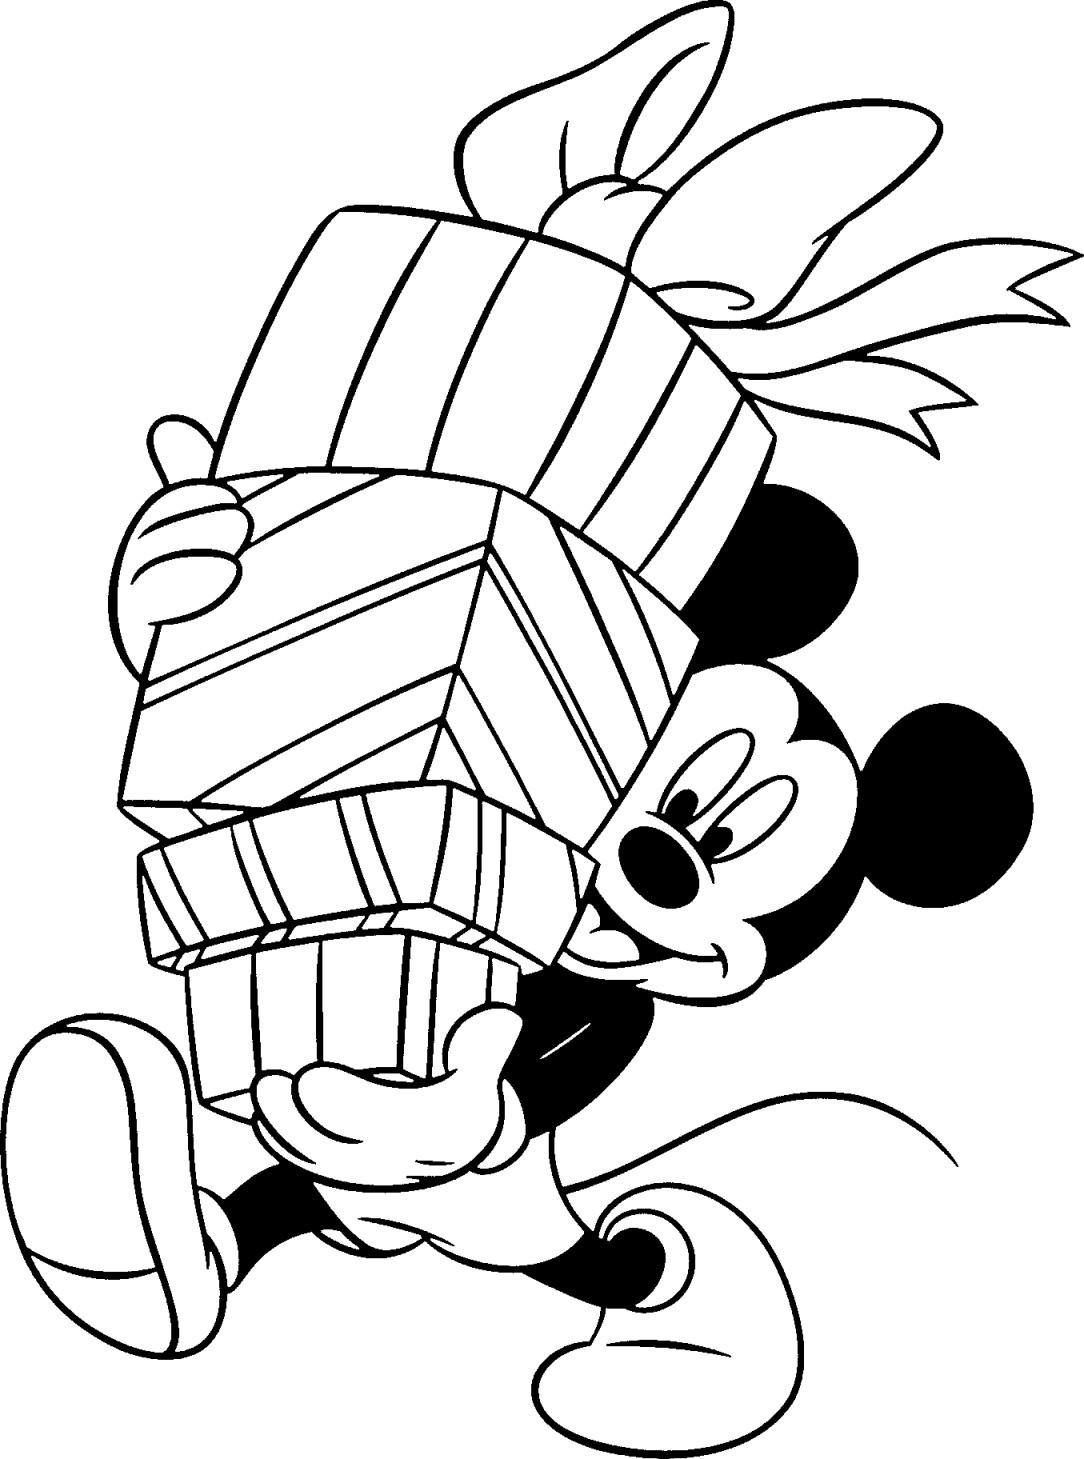 Free Disney Christmas Printable Coloring Pages for Kids ... | christmas coloring pages  book